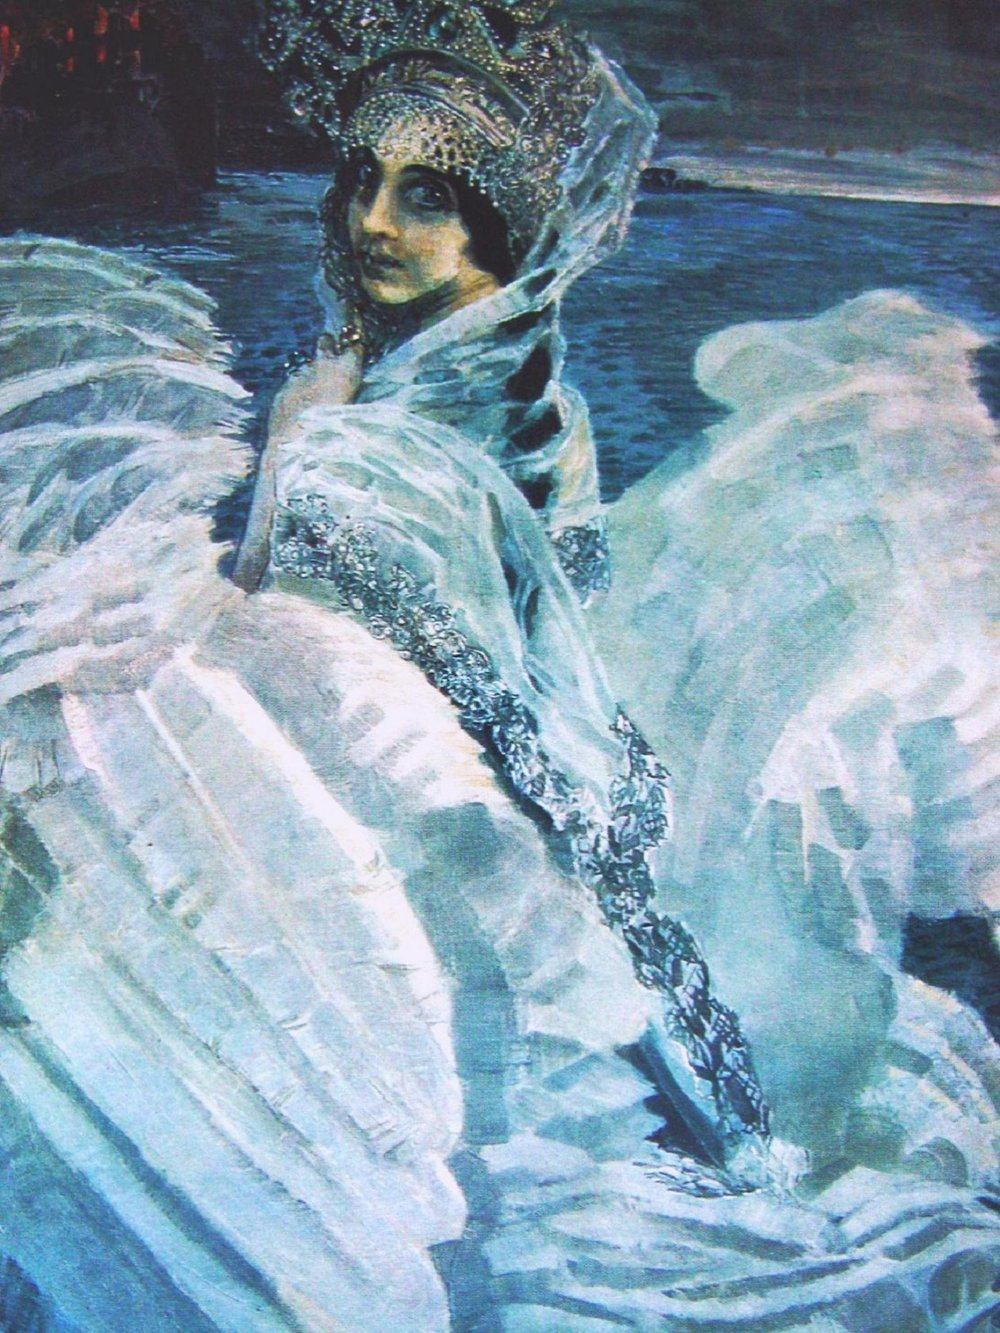 Mikhail Vrubel, The Swan Princess, 1900